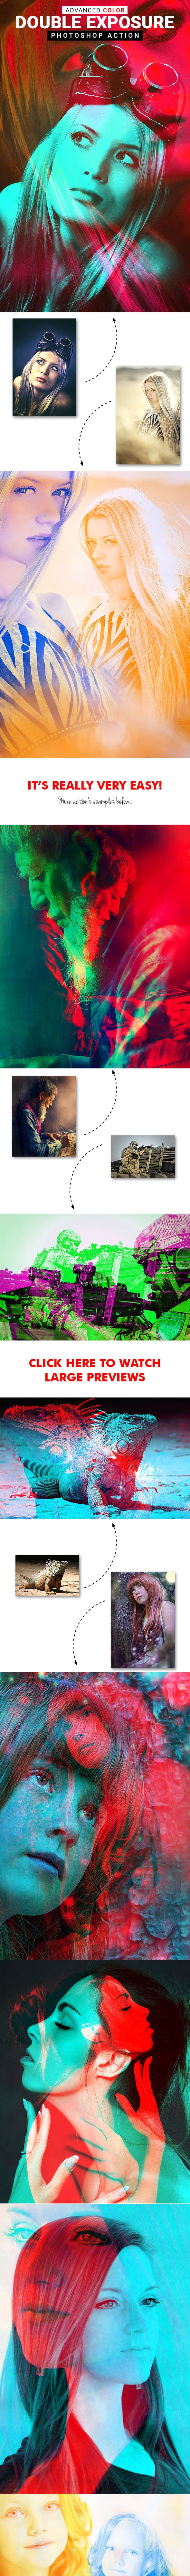 Advanced Color - Double Exposure Photoshop Action - Photo Effects Actions